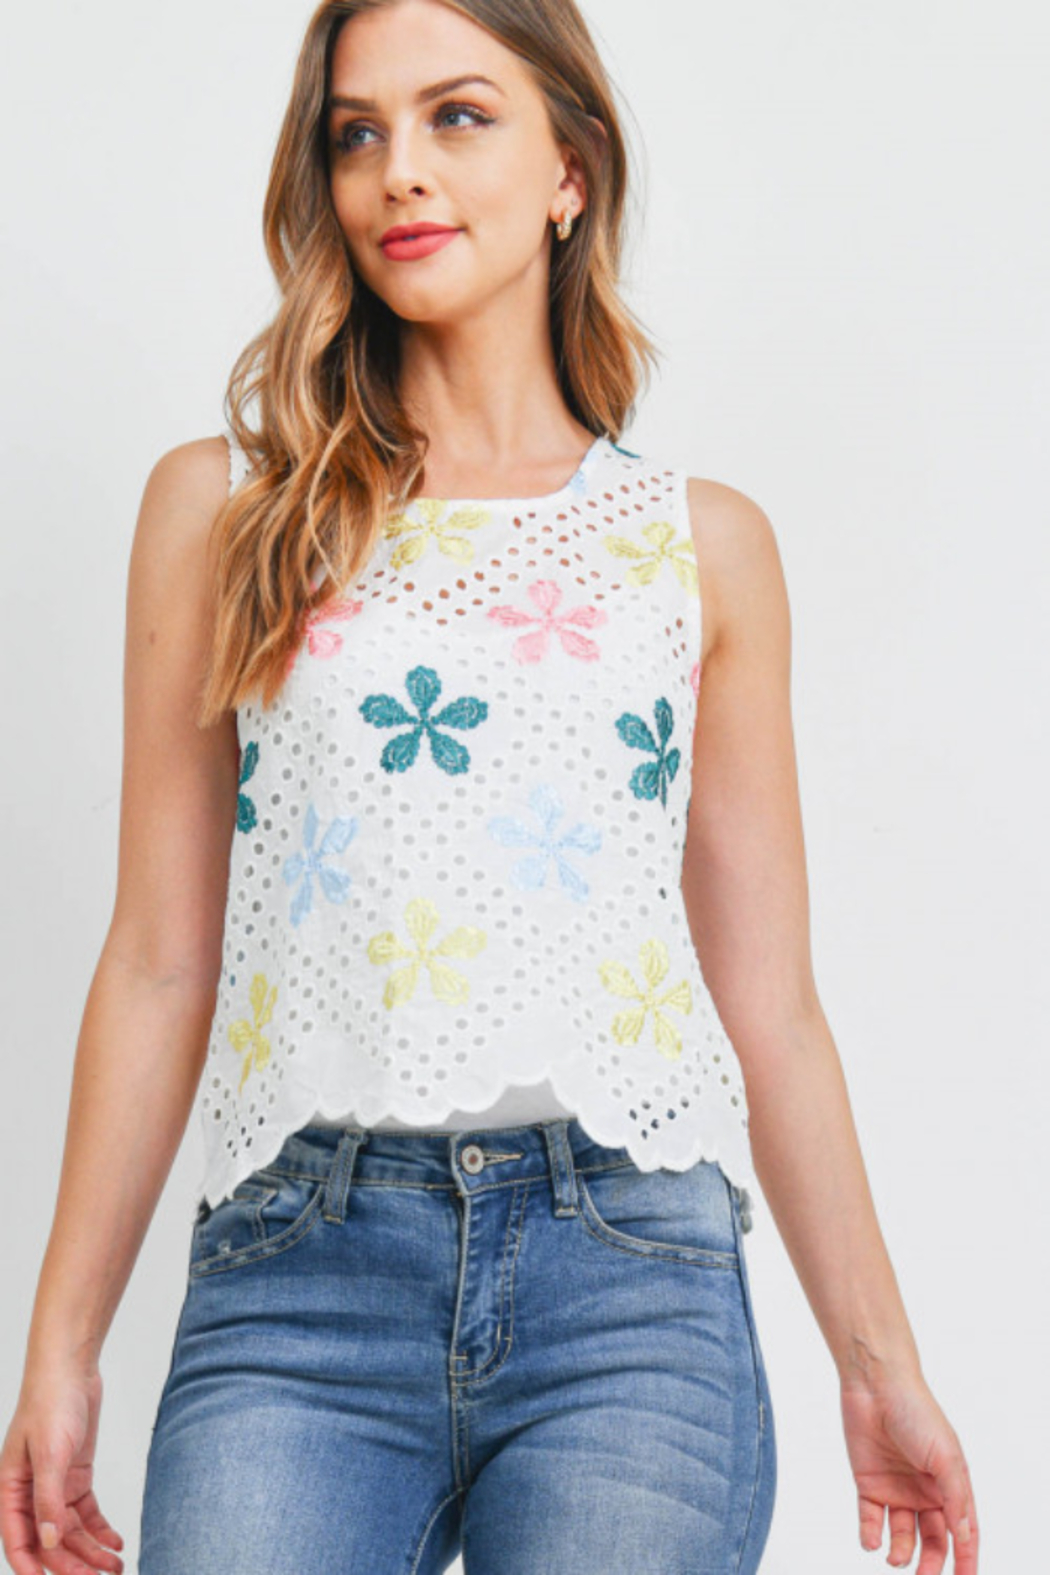 Lyn -Maree's Embroidery Floral Top - Main Image